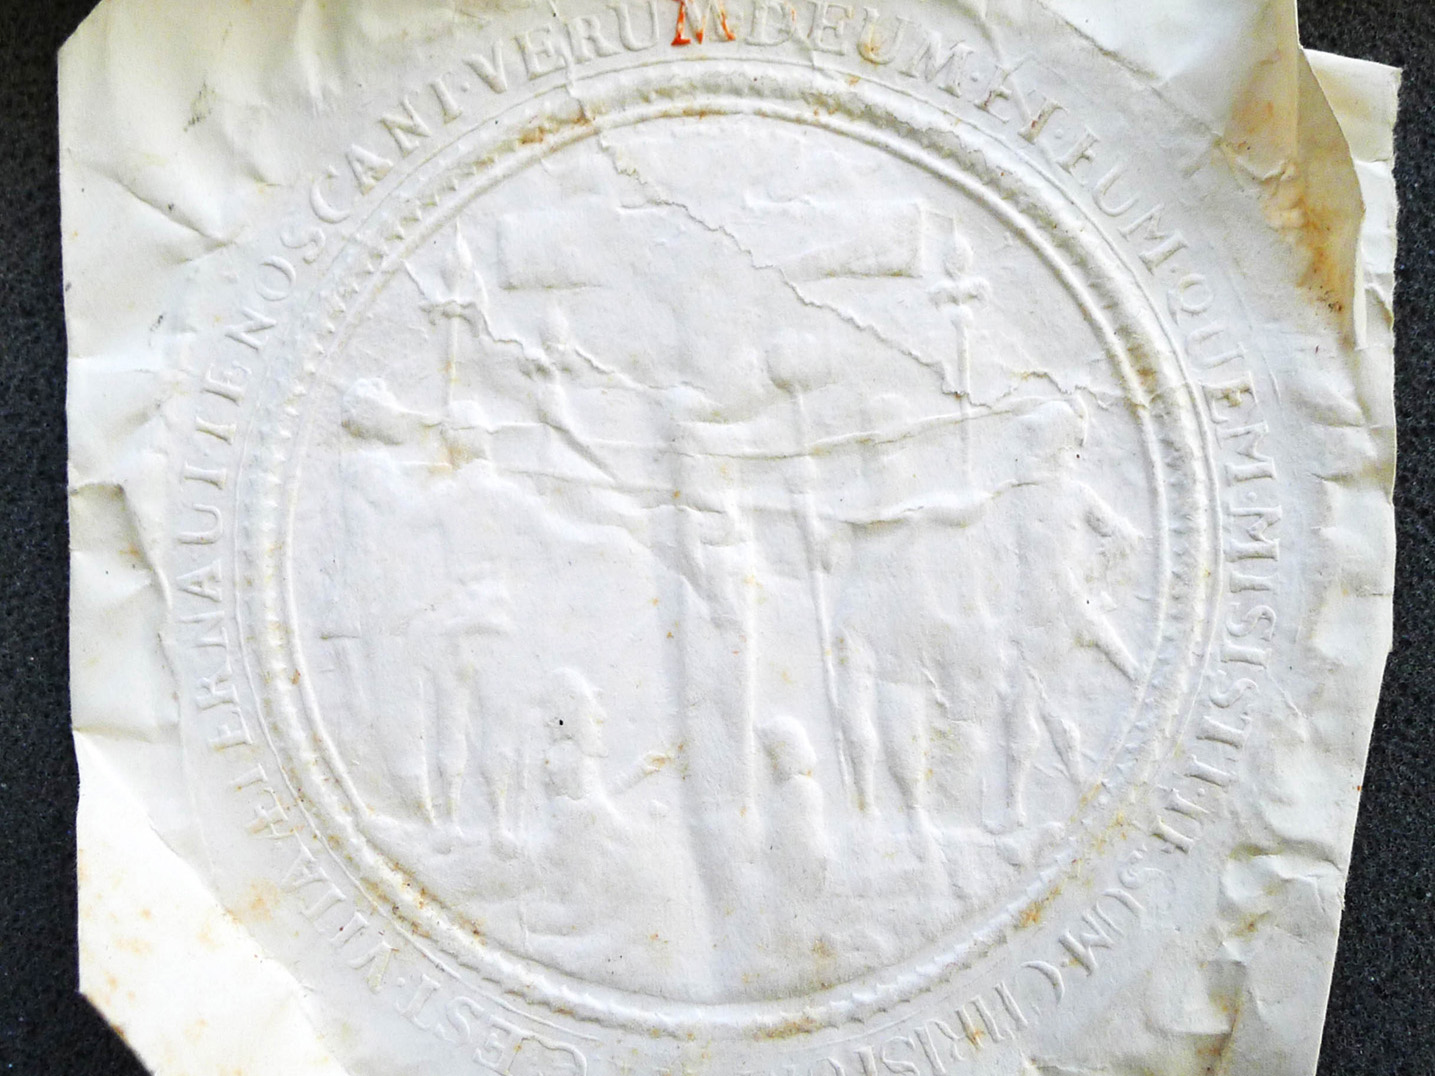 Archbishop's seal